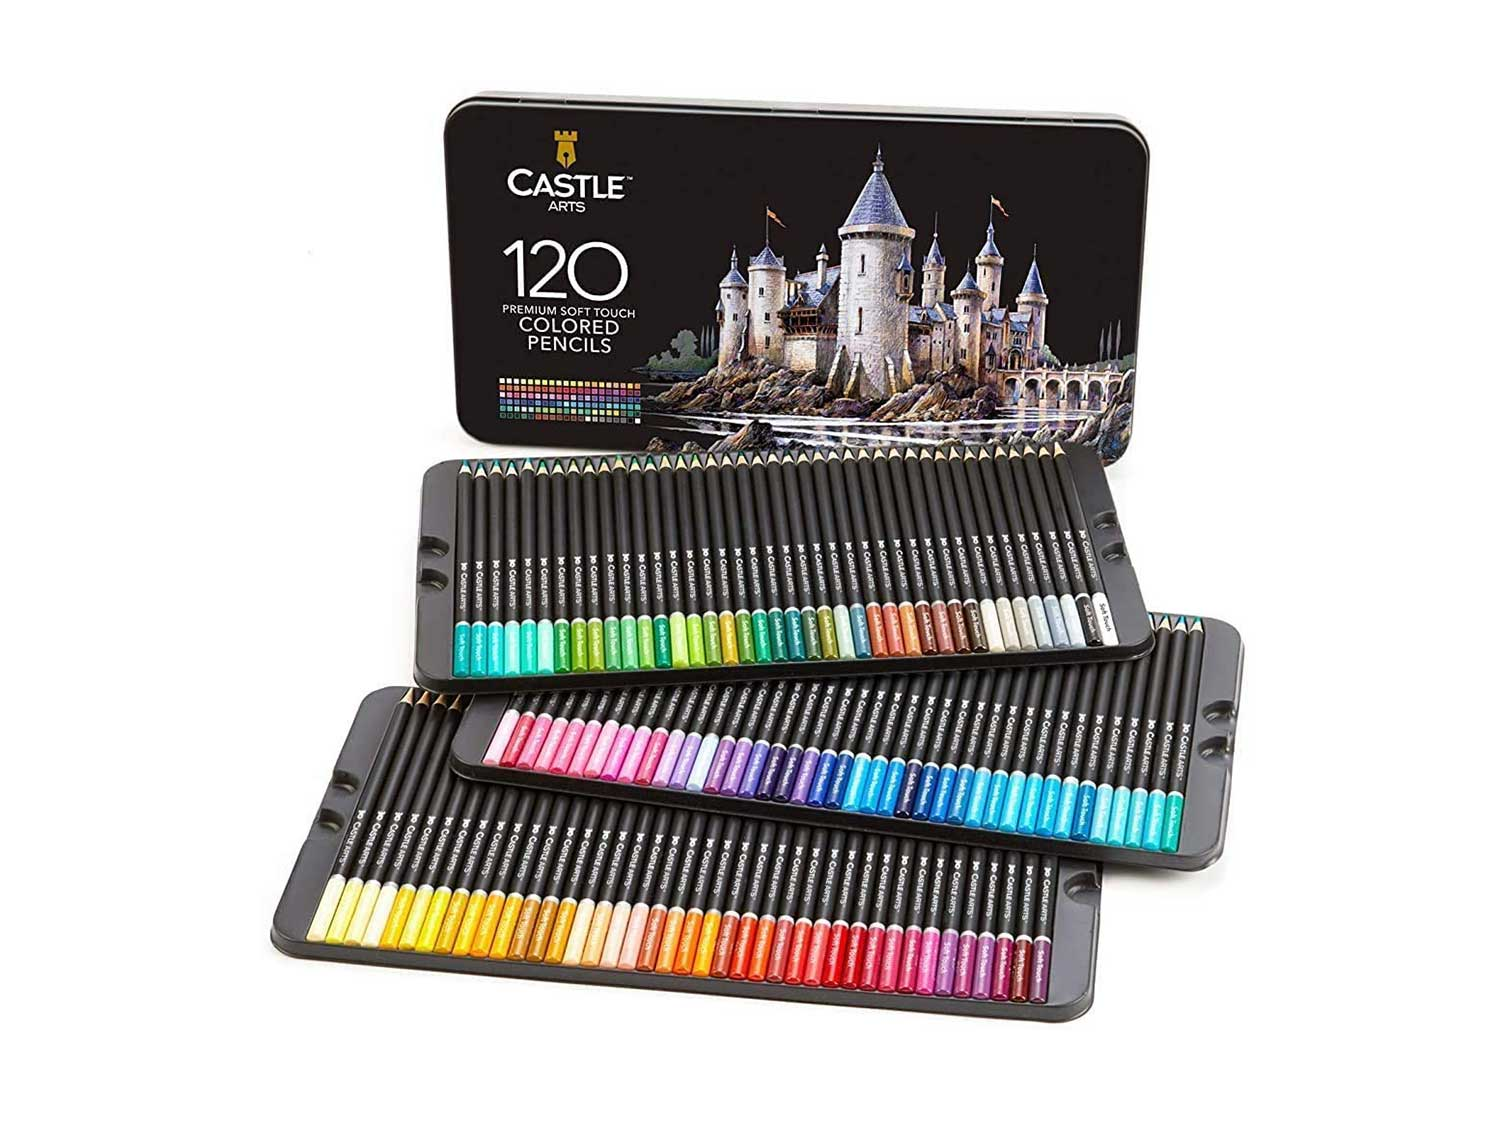 Castle Art Supplies 120 Coloured Pencils Set for Adults Artists Professional | Featuring soft series core for expert layering blending shading drawing | Perfect for colouring books and classroom